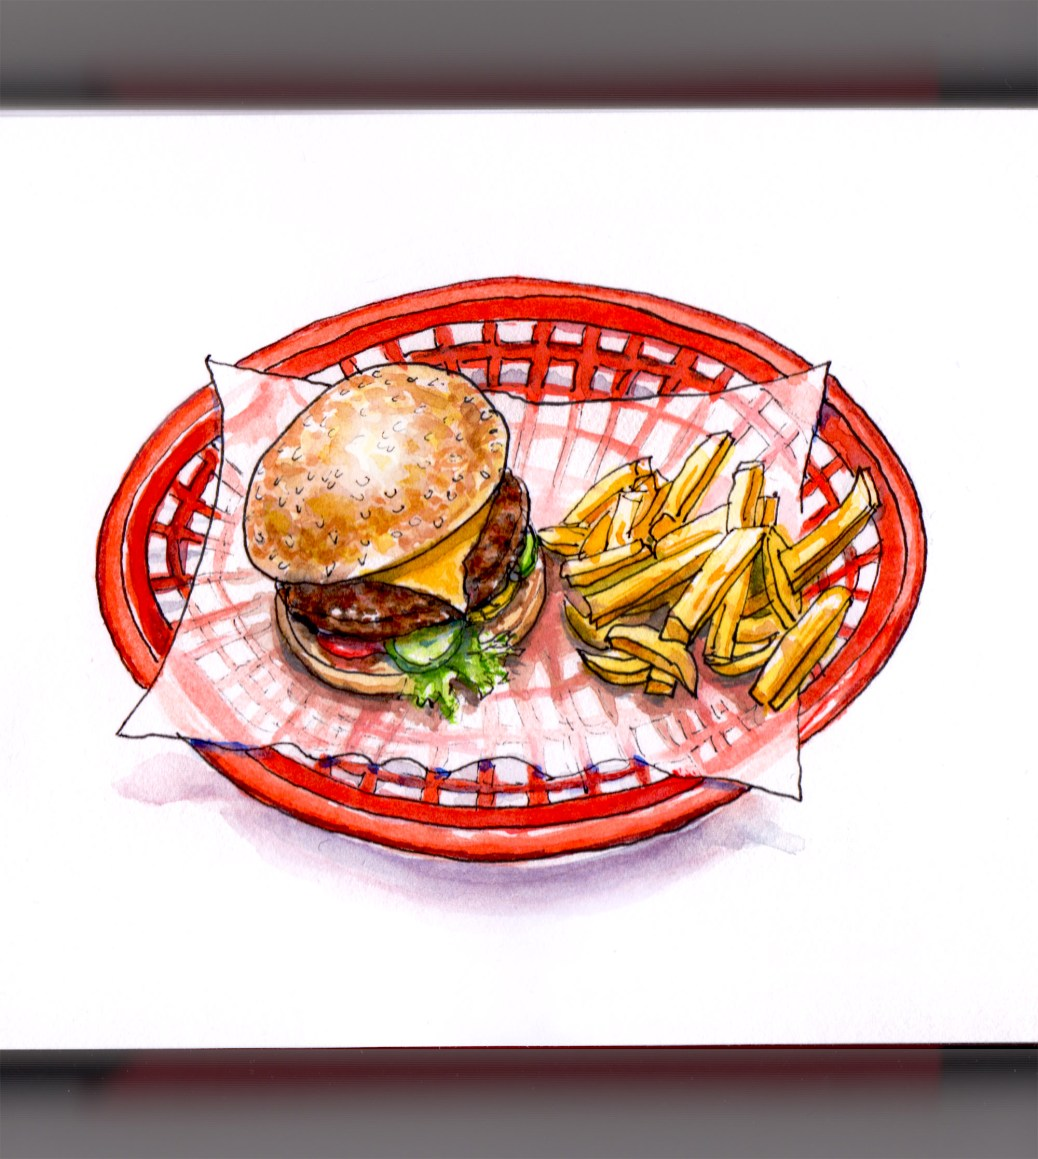 Day 8 - #WorldWatercolorGroup Burger and Fries in a red basket - #doodlewash